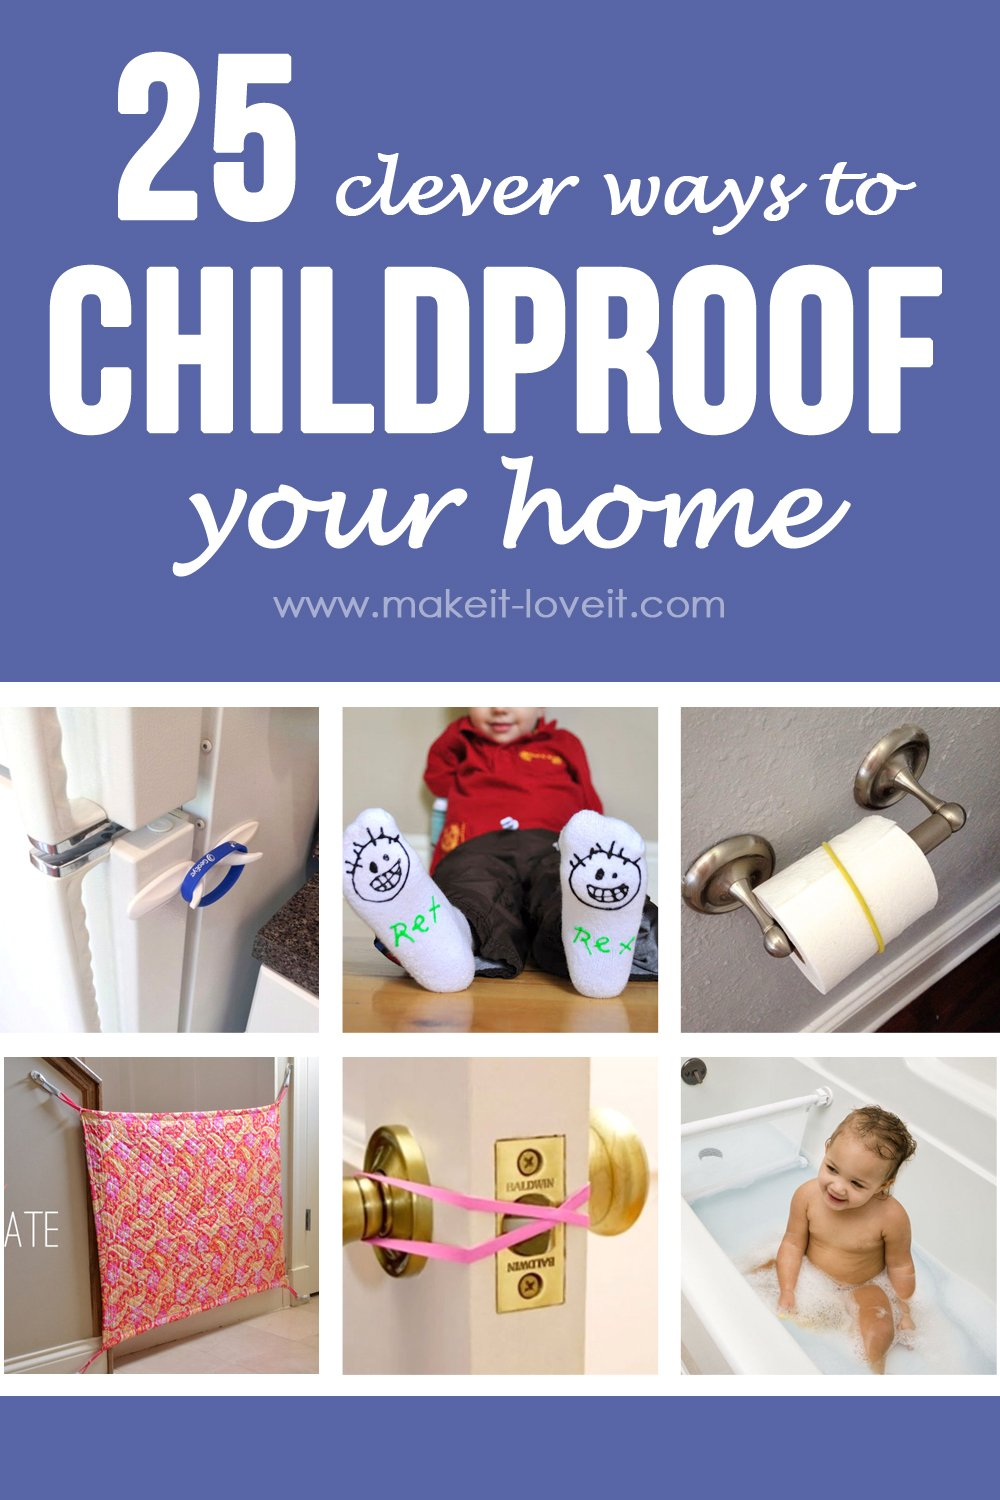 25 Clever Ways to Childproof Your Home | via Make It and Love It